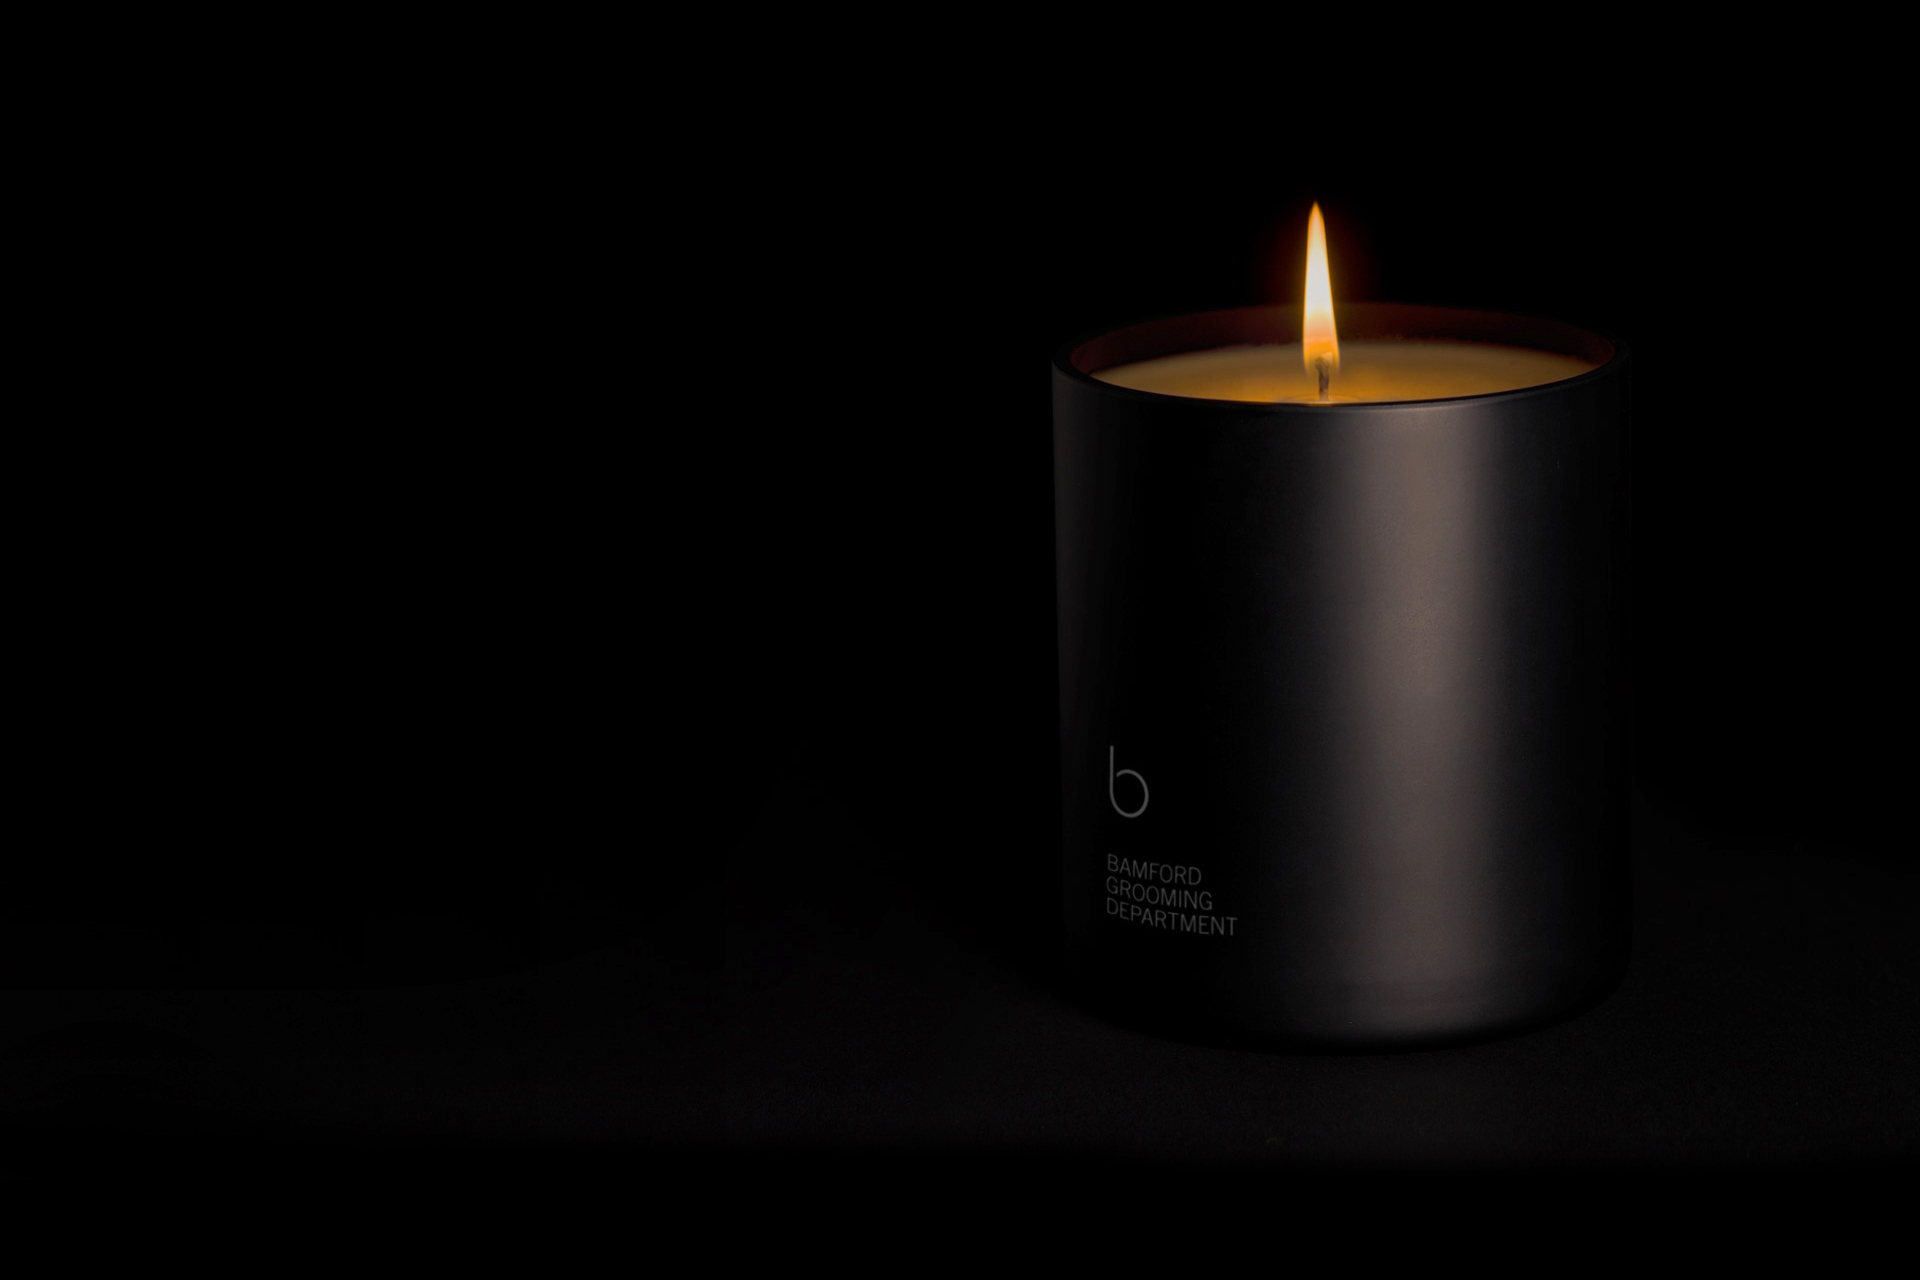 Bamford, Grooming, Department, Products, Agency, Photography, Candle, Macro, George, Organic, Packaging, Silhouette, Flame